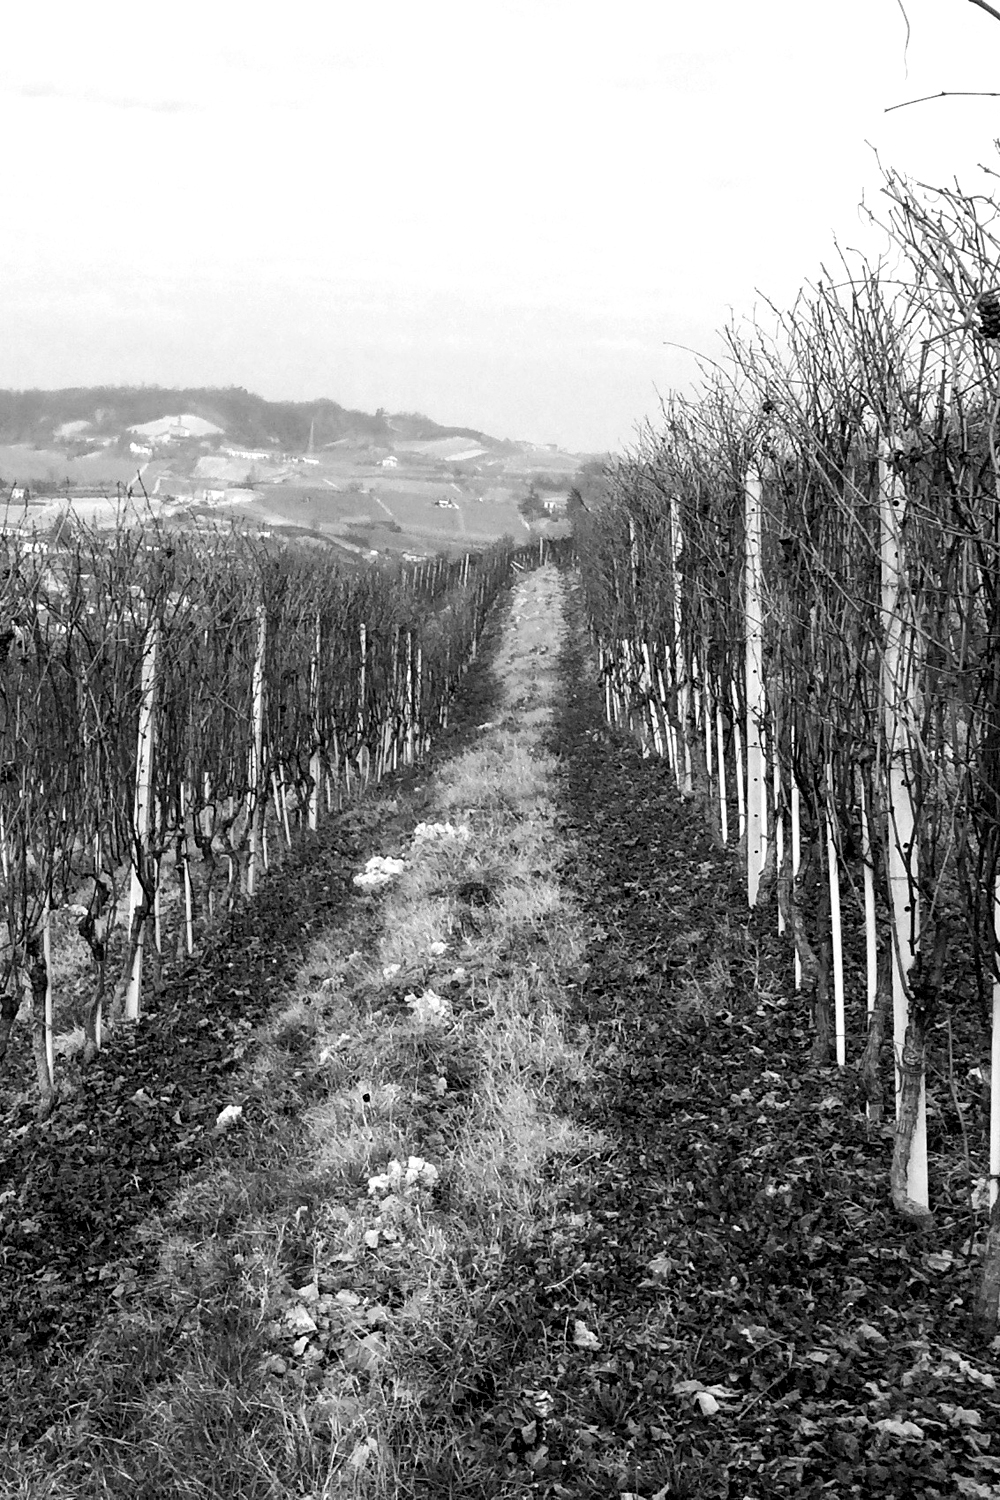 NEBBIOLO: 40% - DOC Nebbiolo D'Alba • Deep Chalk, clay & sand mix • Slight Slope • South-East facing • Green • Pruning Style: Guyot • 30 years old • 7000 kg/ha